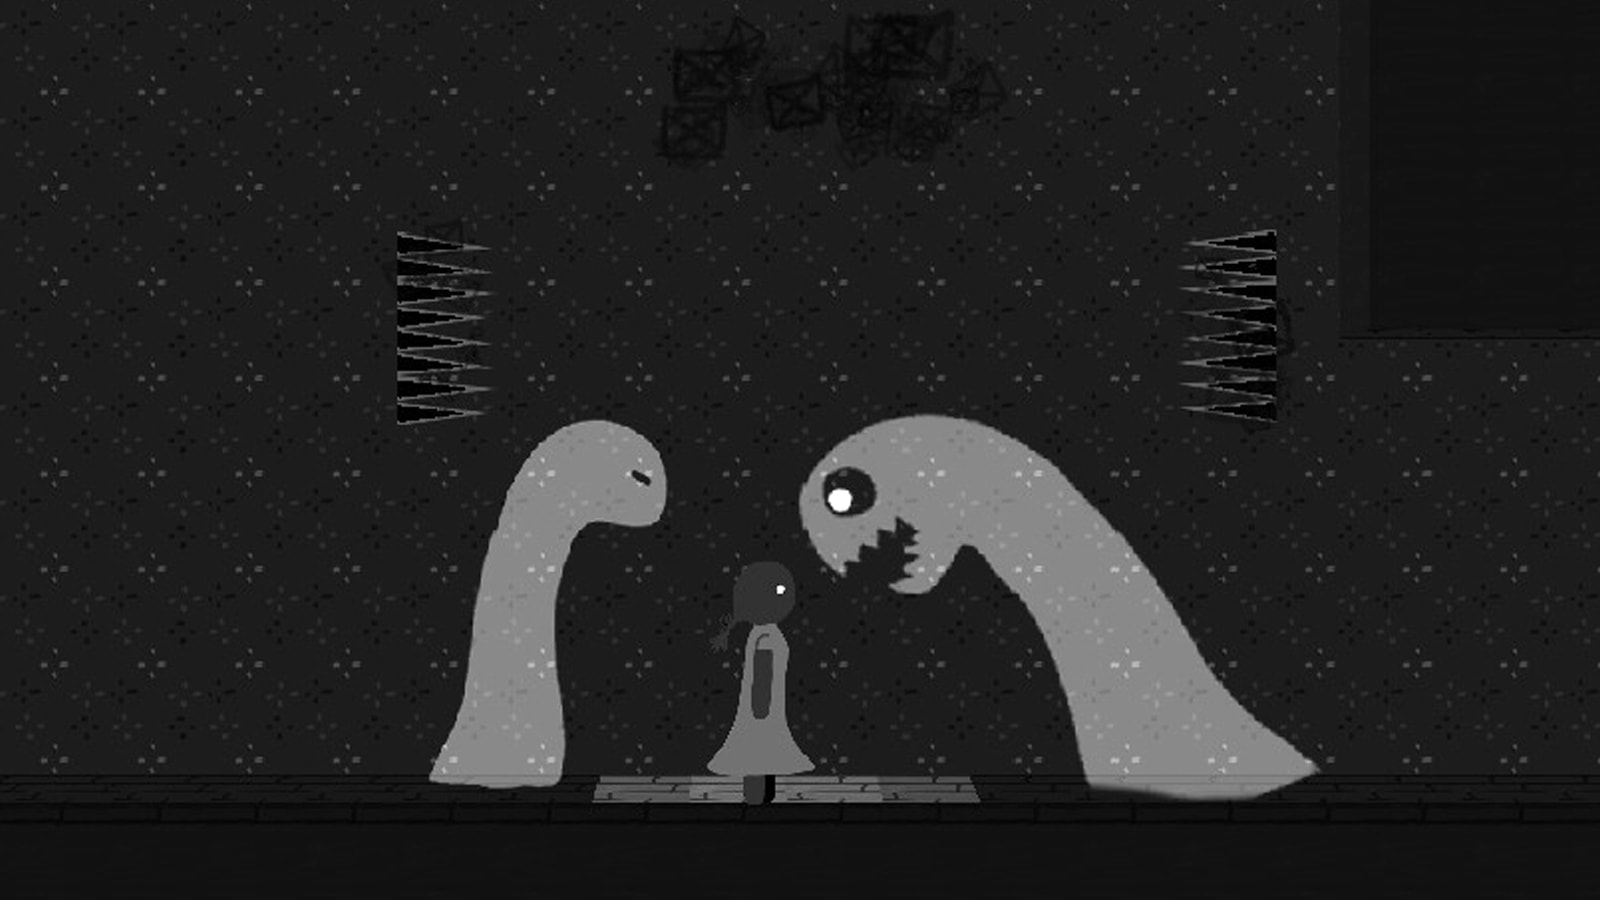 Two grey monsters surround a girl, one behind her, one baring its teeth in front of her.